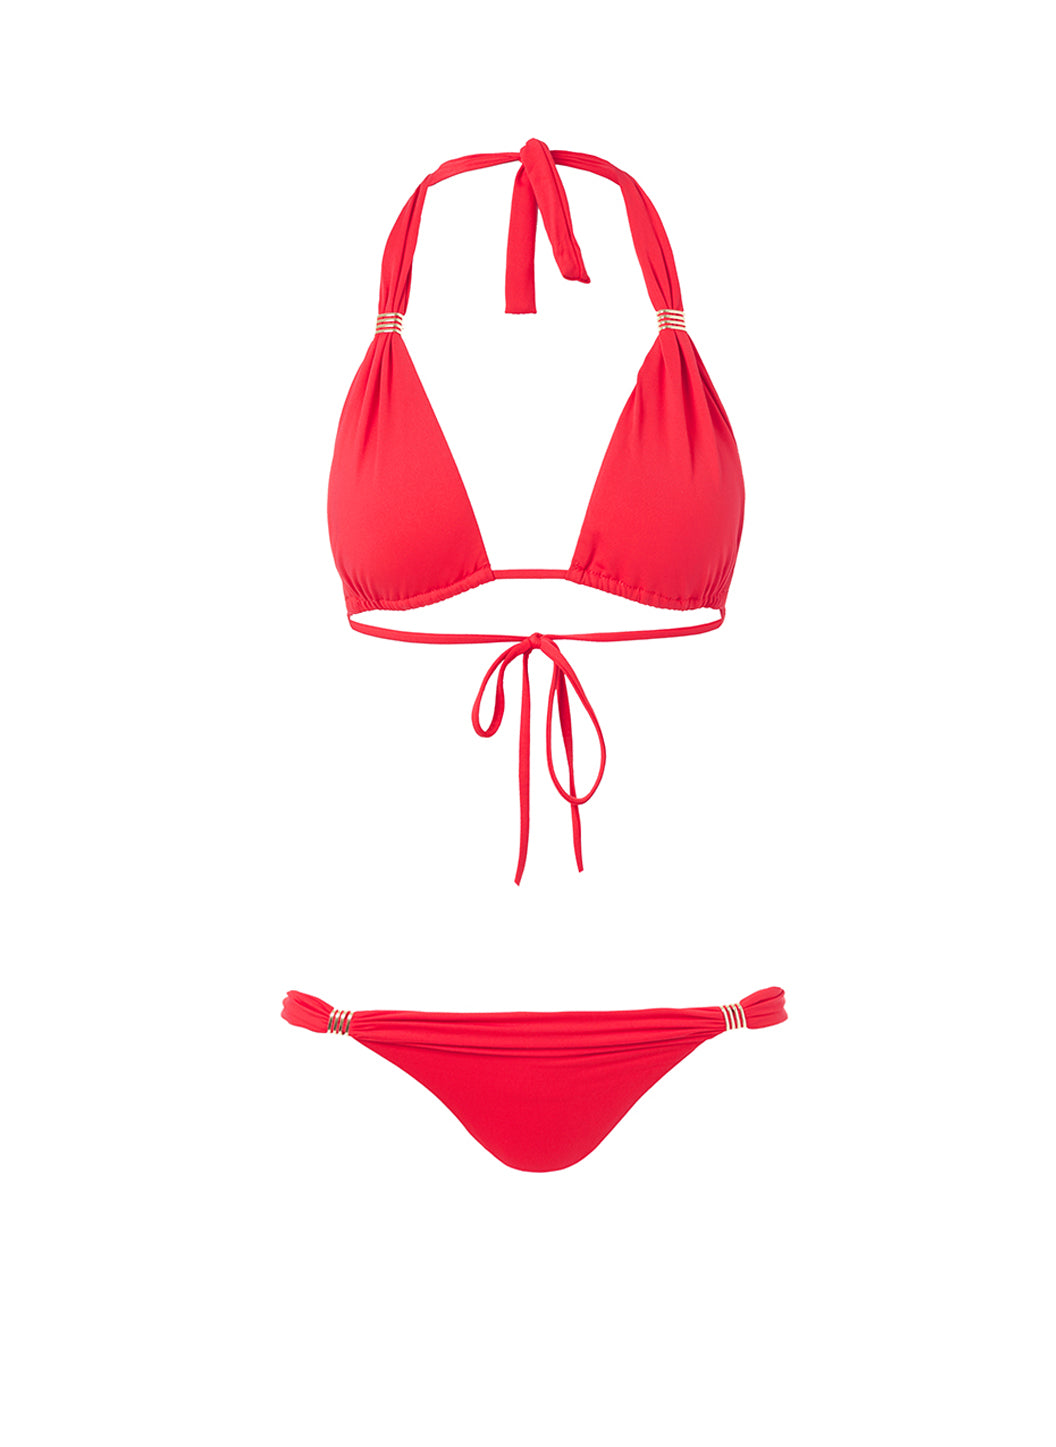 Grenada Red Adjustable Halterneck Bikini